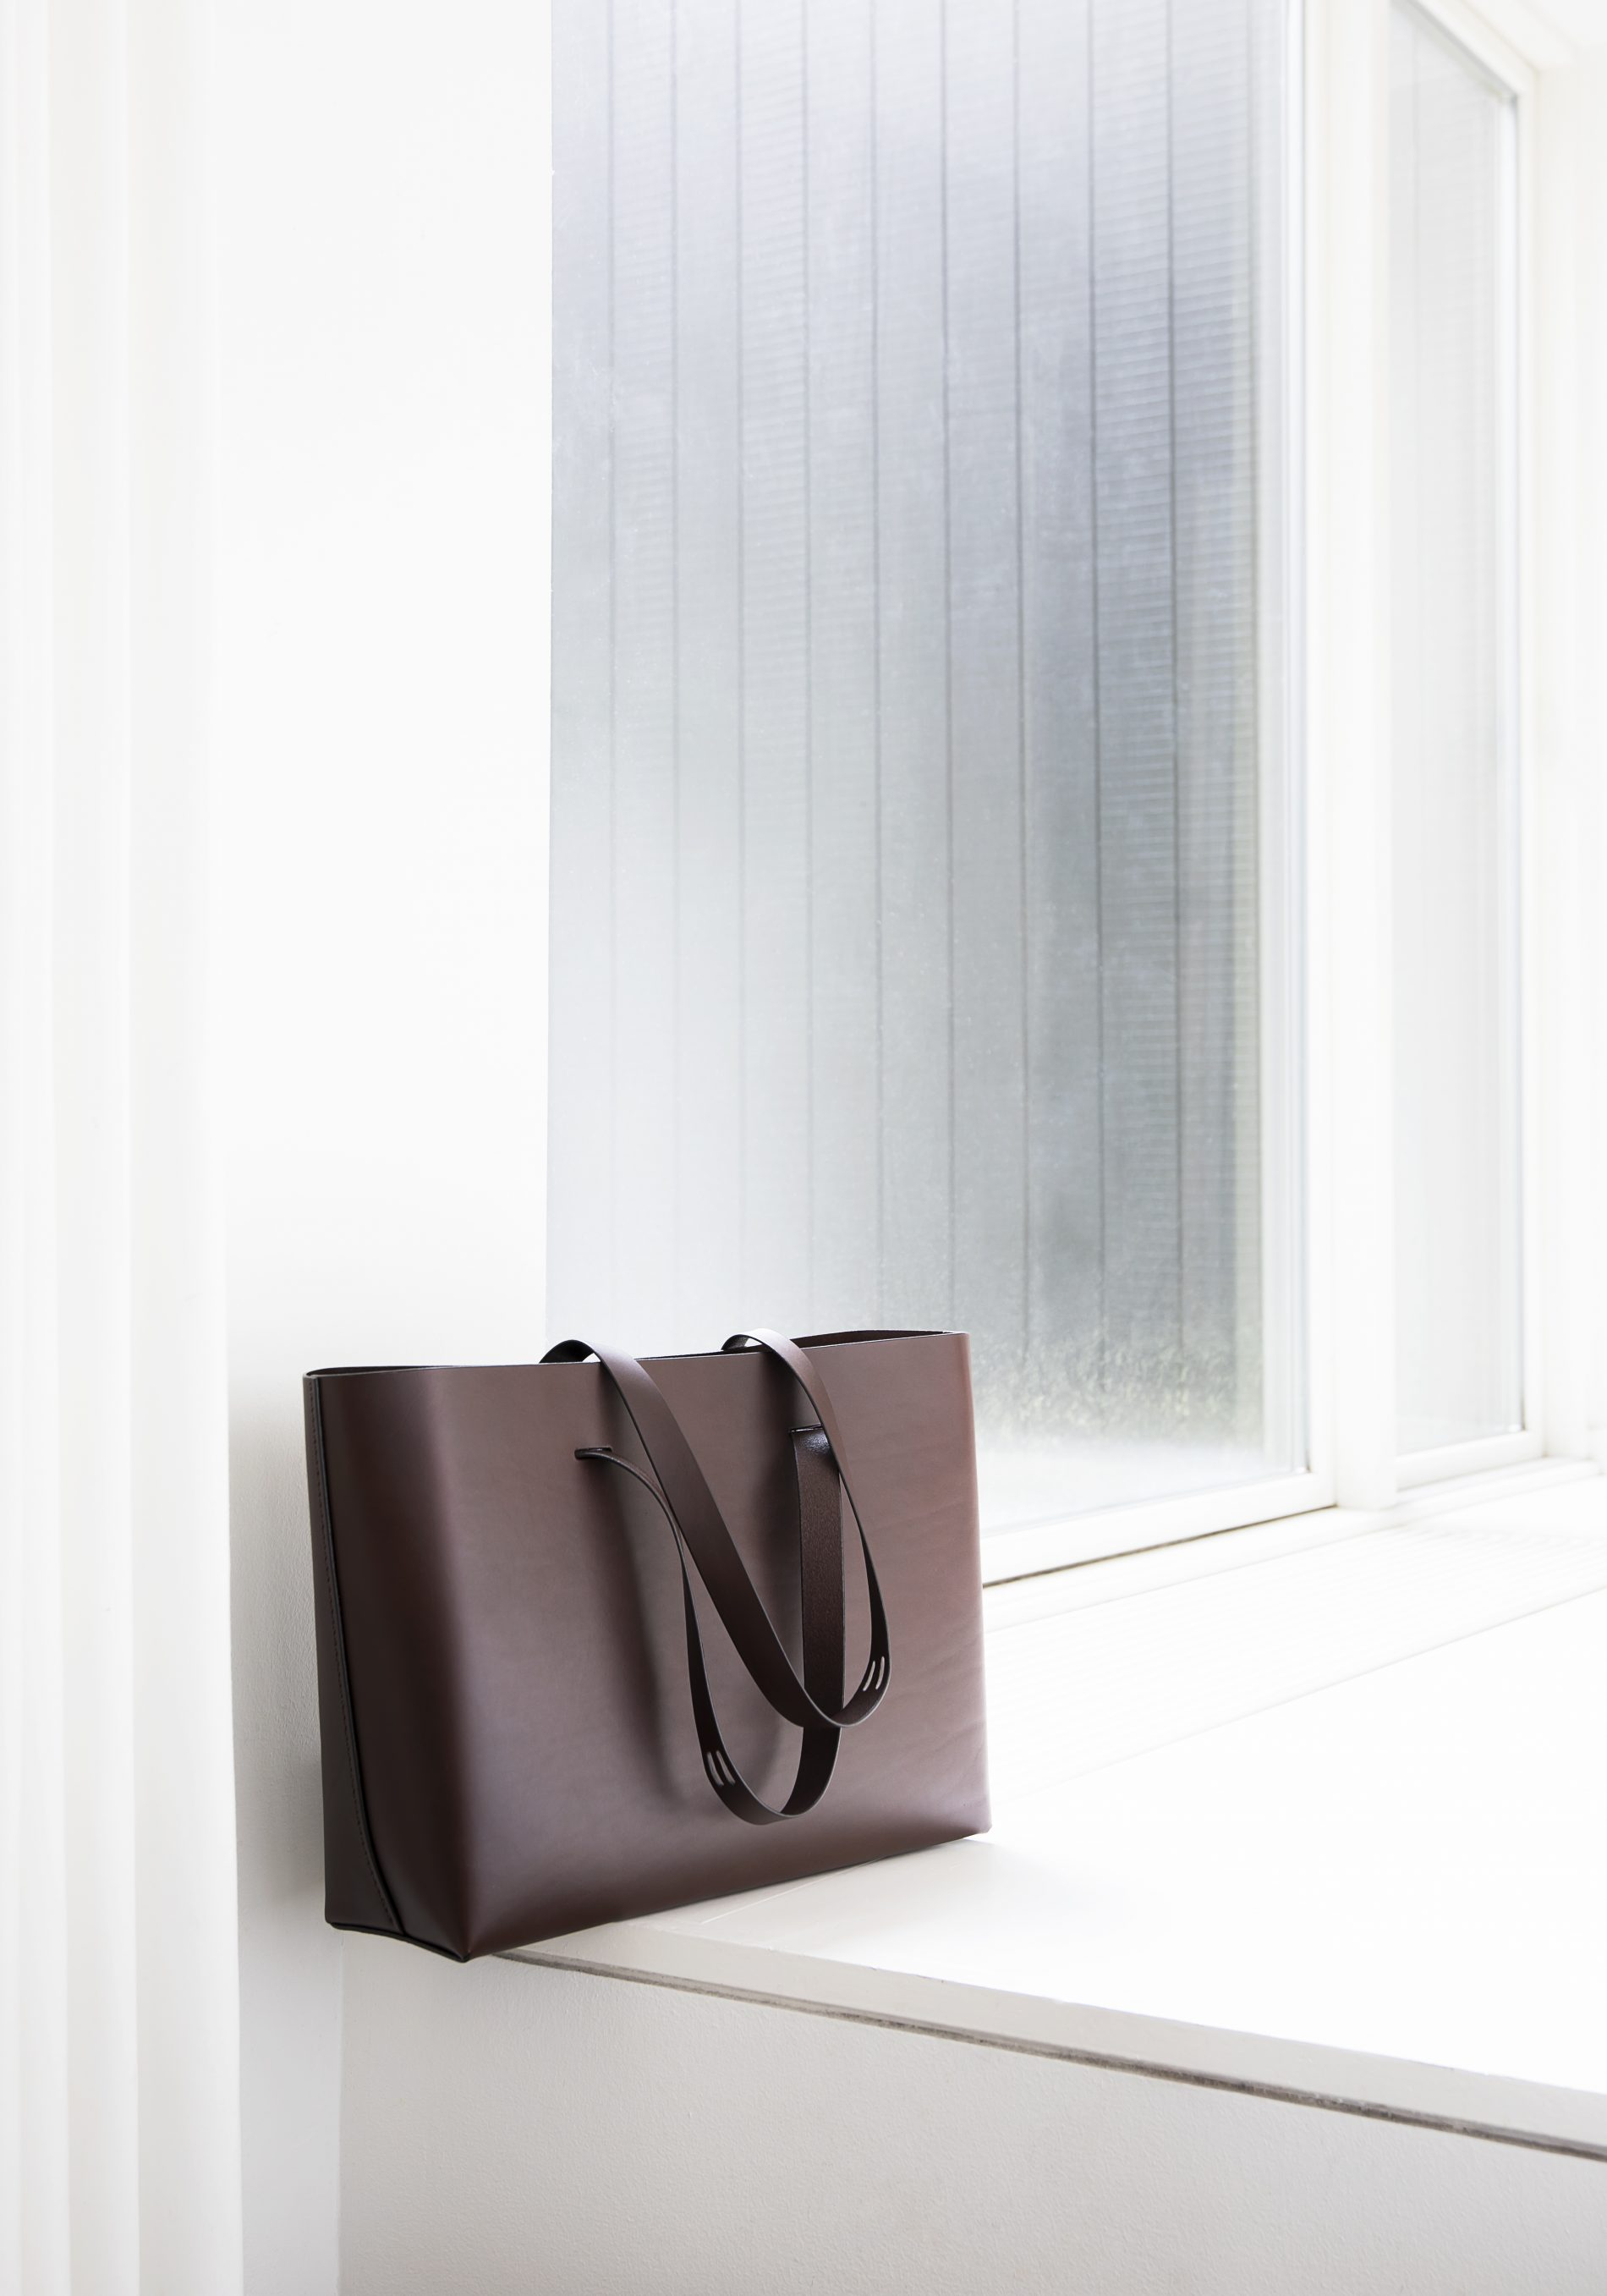 CUT bag by Lars Vejen for Leather By Hands 01